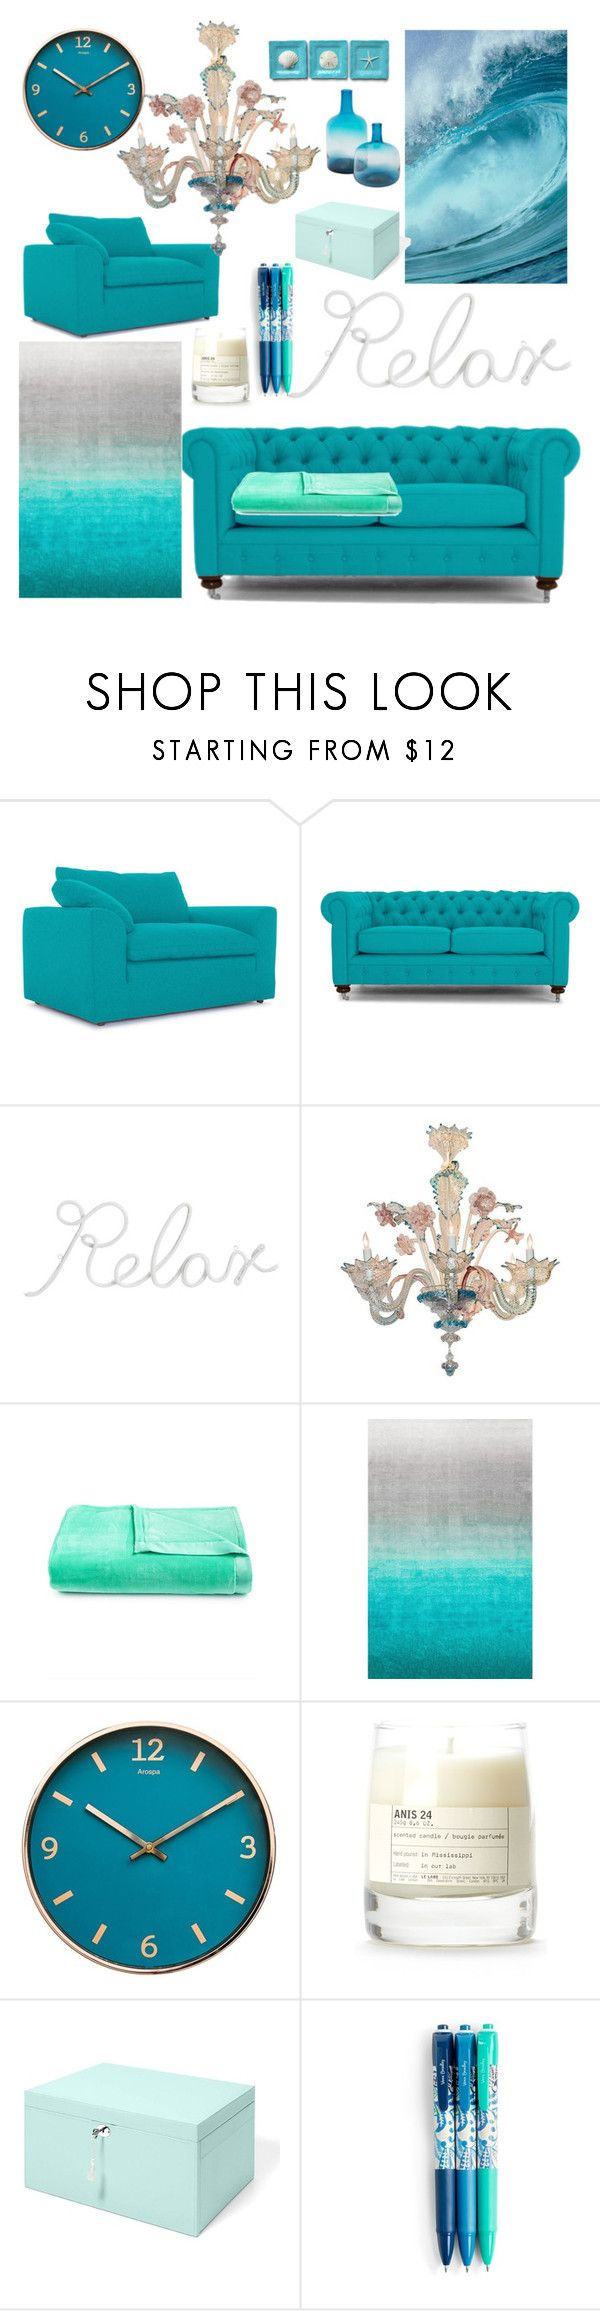 """""""Untitled #63"""" by mariasara-dima ❤ liked on Polyvore featuring interior, interiors, interior design, home, home decor, interior decorating, Joybird, PBteen, Berkshire and nuLOOM"""